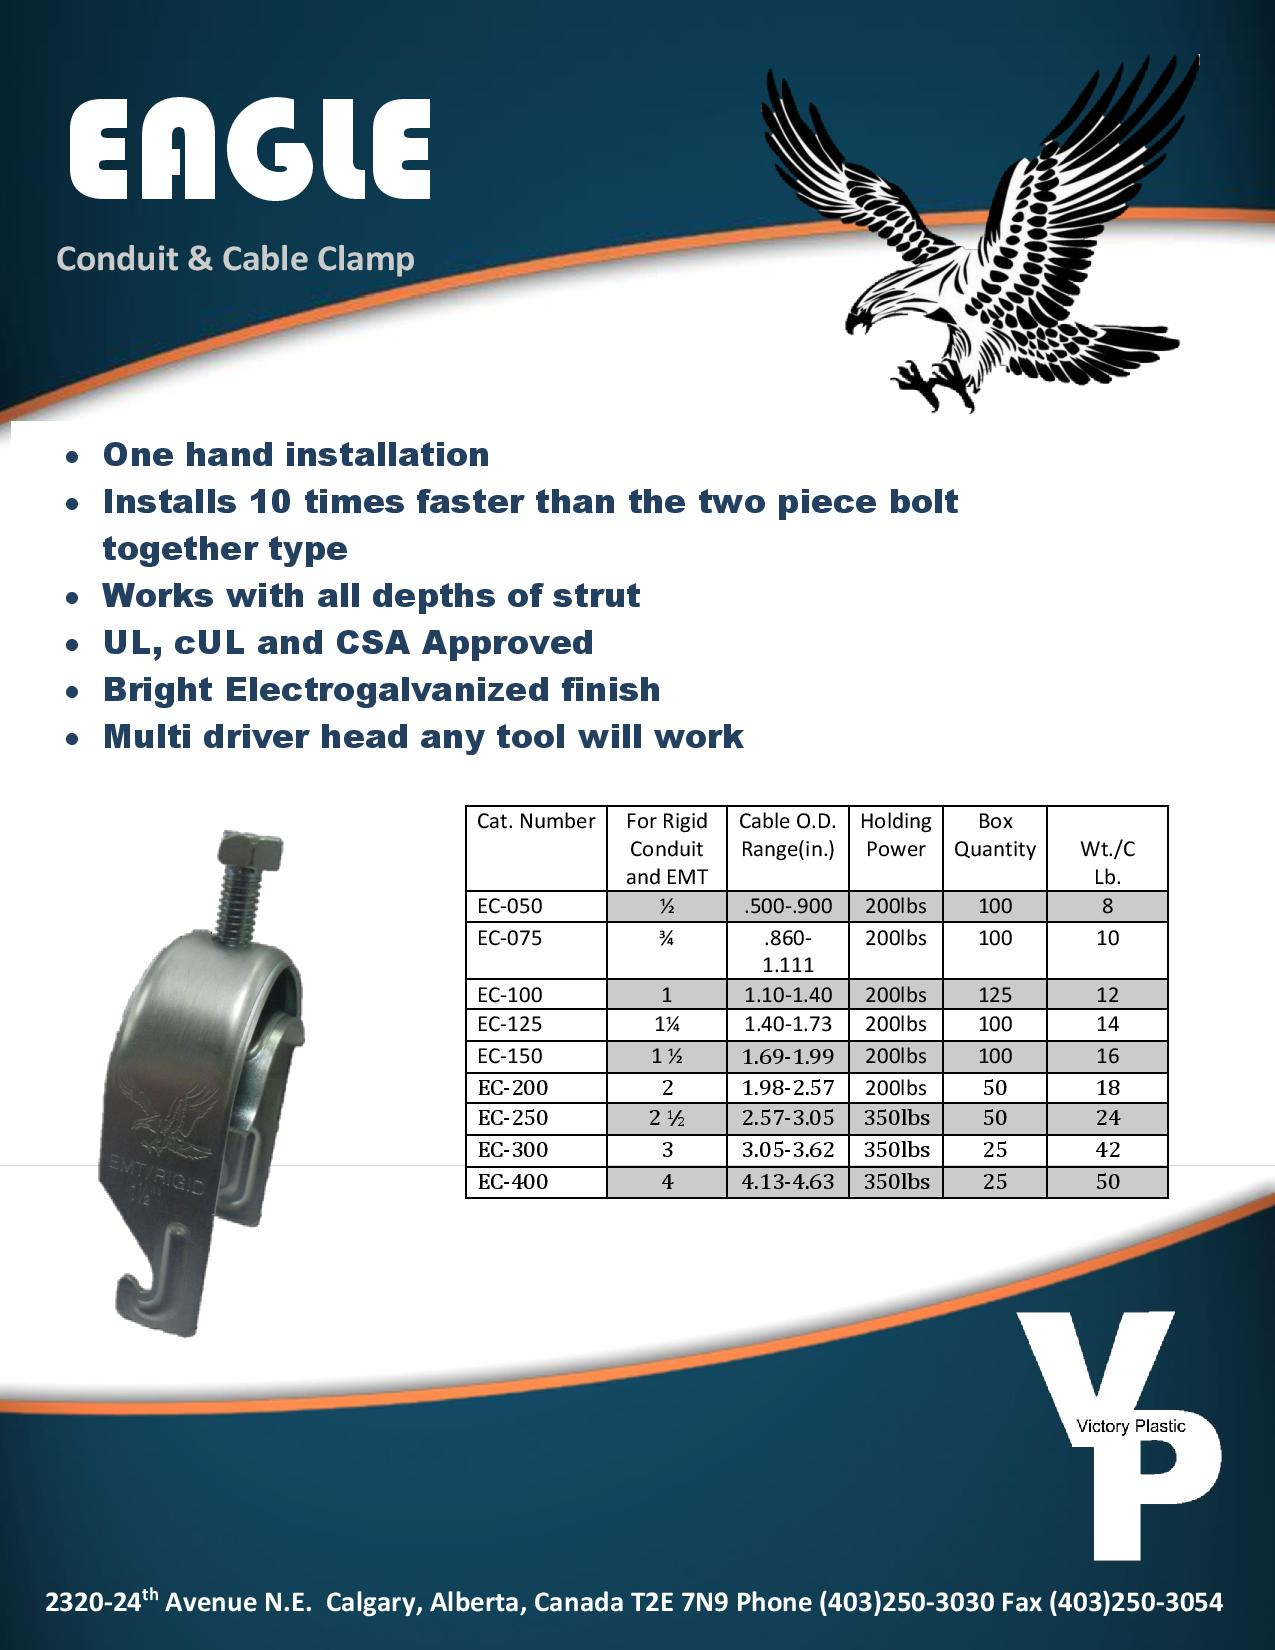 Eagle+Conduit+and+Cable+Clamp+Cat+without+price-page-001